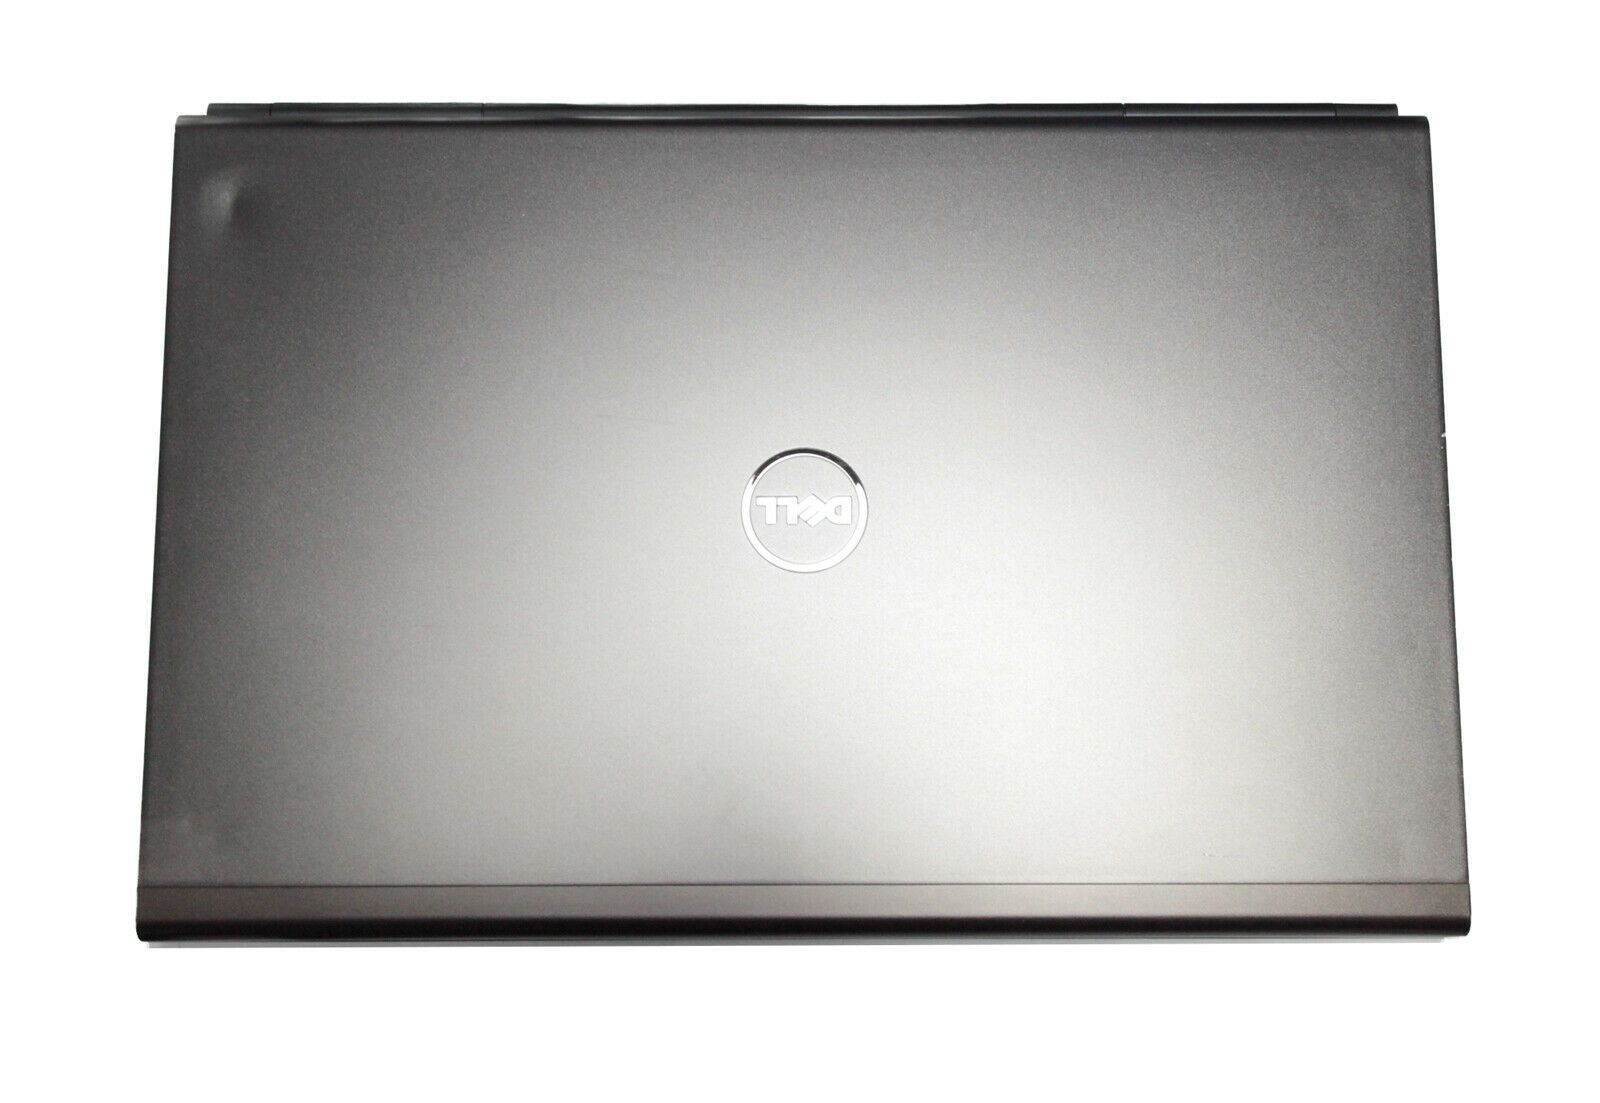 Dell Precision M6800 CAD Laptop: Core i7, 16GB, K4100M, 240GB+HDD, Warranty, VAT - CruiseTech